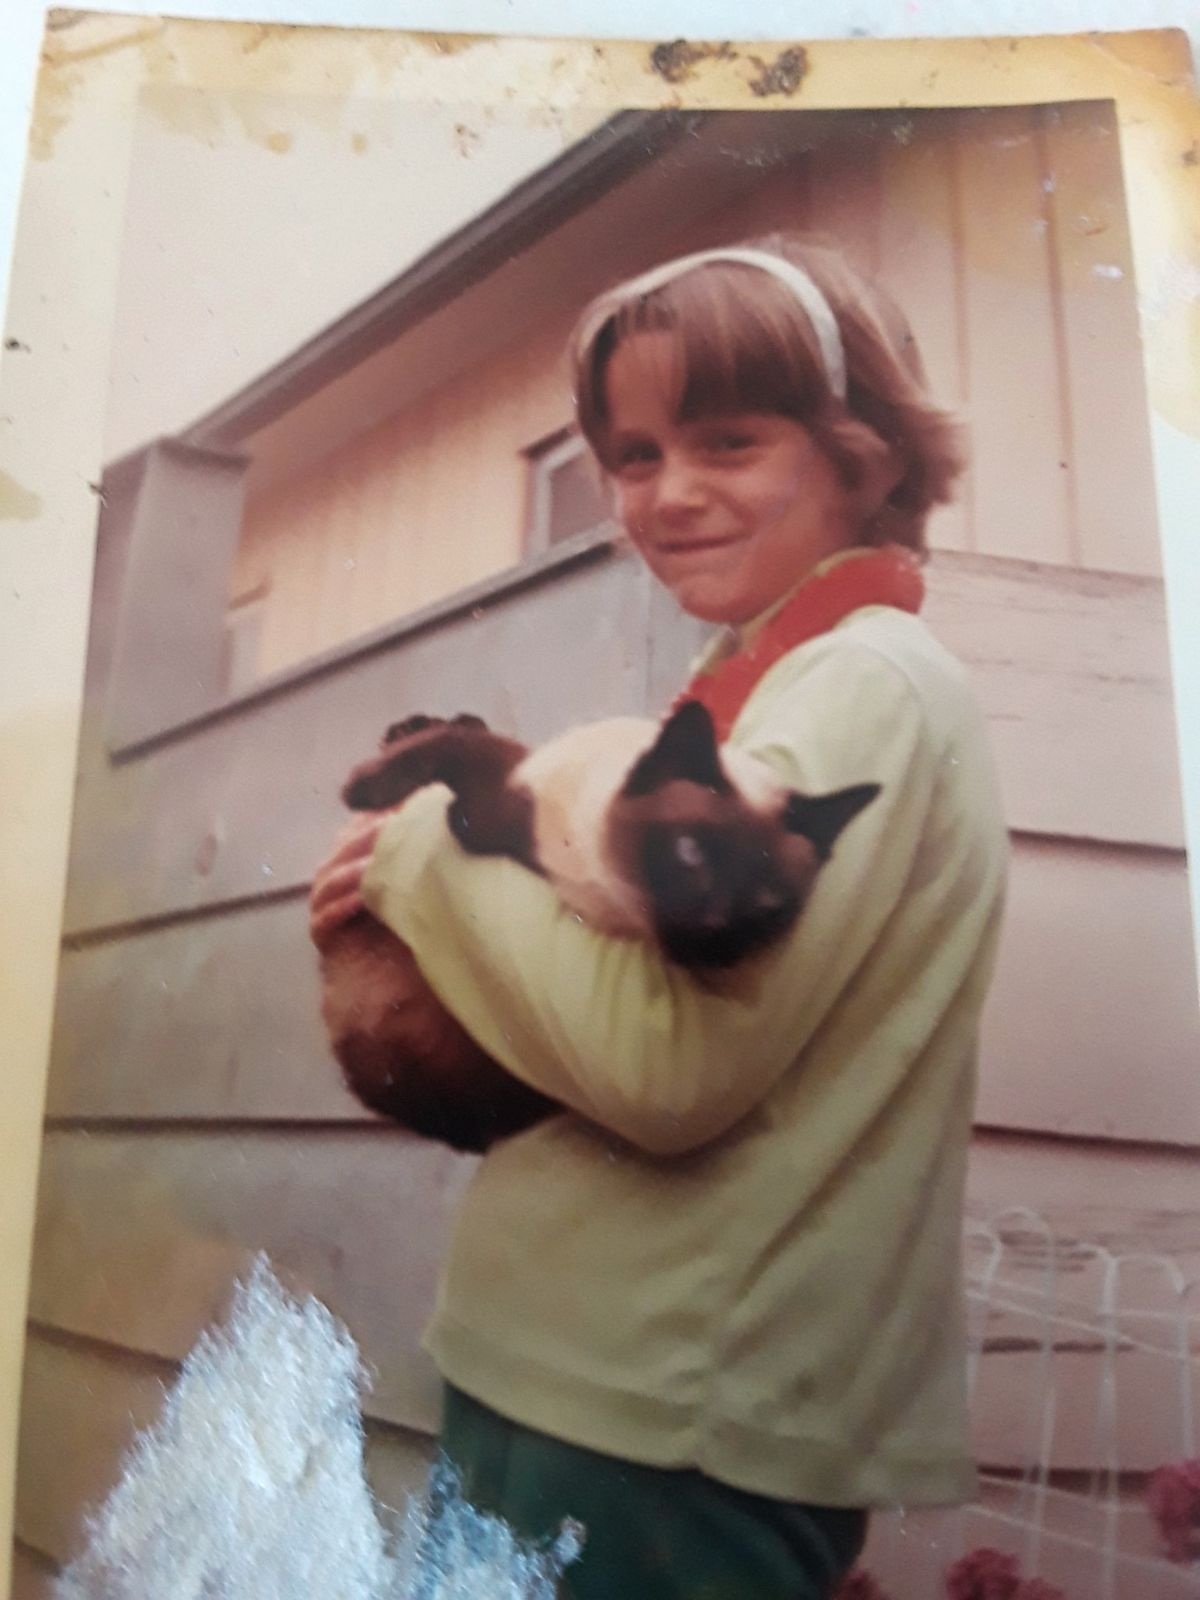 e9c2ada713f6af DNA leads to man s arrest 46 years after murder of 11-year-old Linda  O Keefe   We have never forgotten Linda  - ABC News